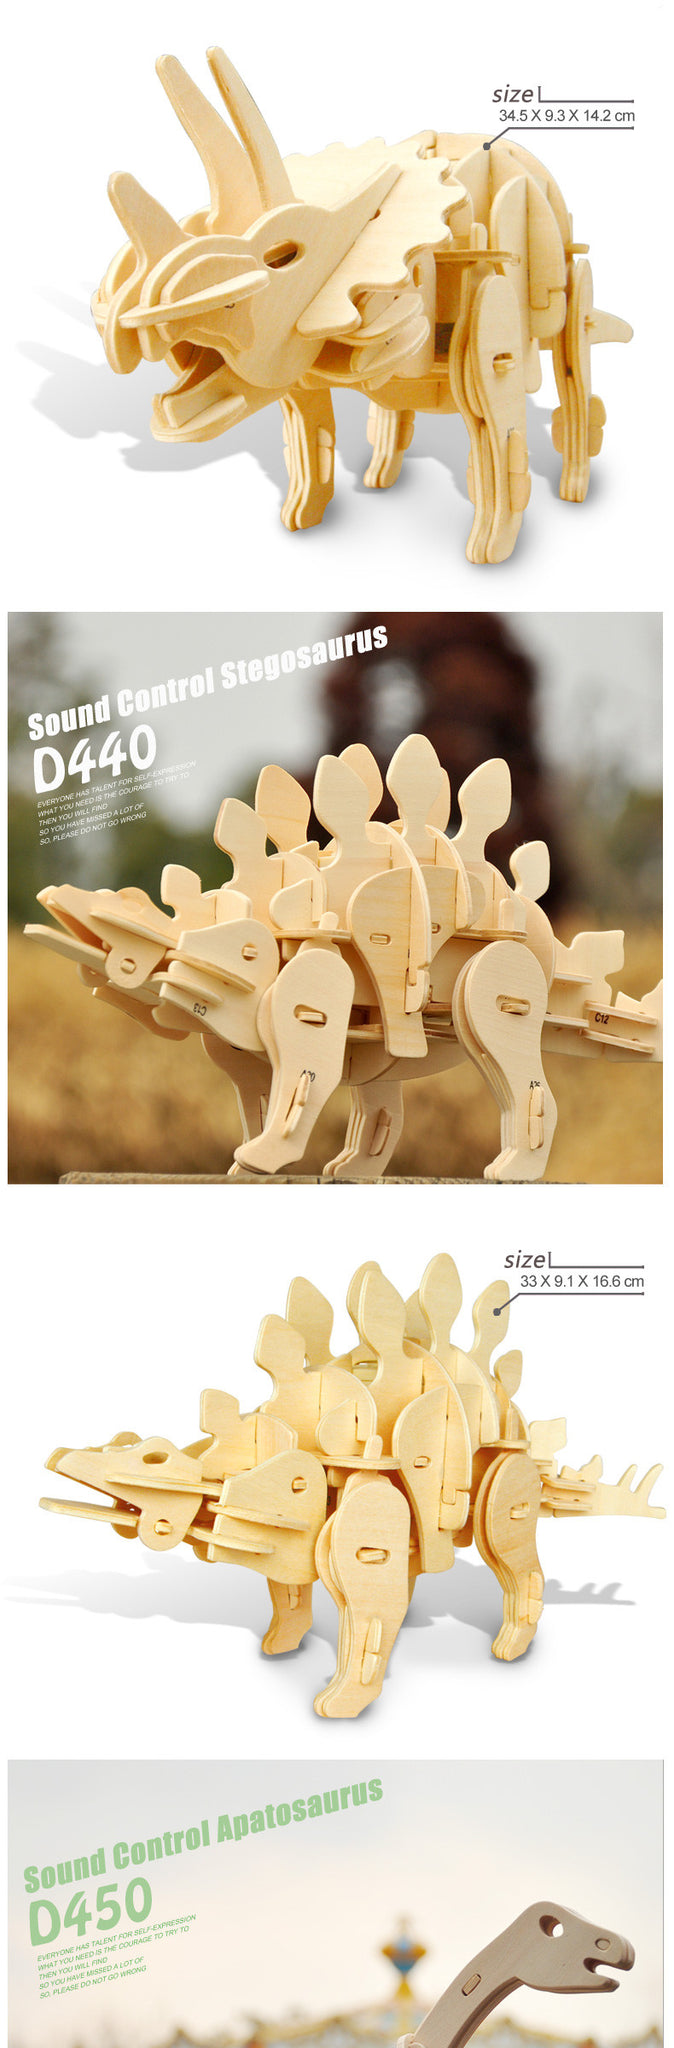 3 8bbf75eb 5be3 4a9e 8c07 - Robotime - DIY Models, DIY Miniature Houses, 3d Wooden Puzzle